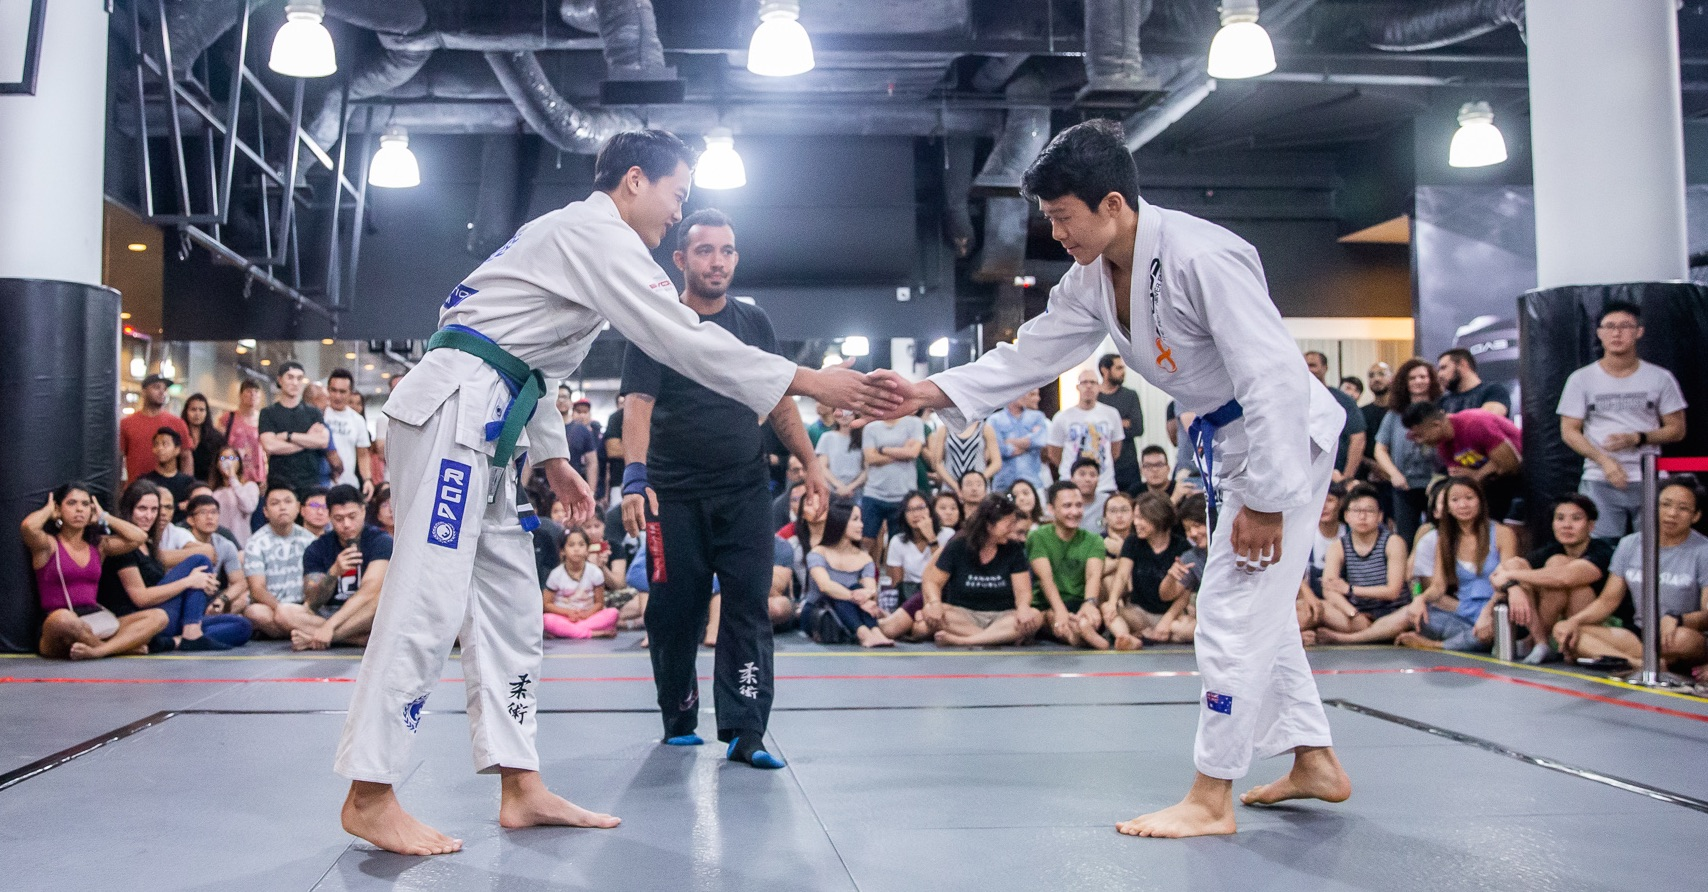 two BJJ competitors shaking hands